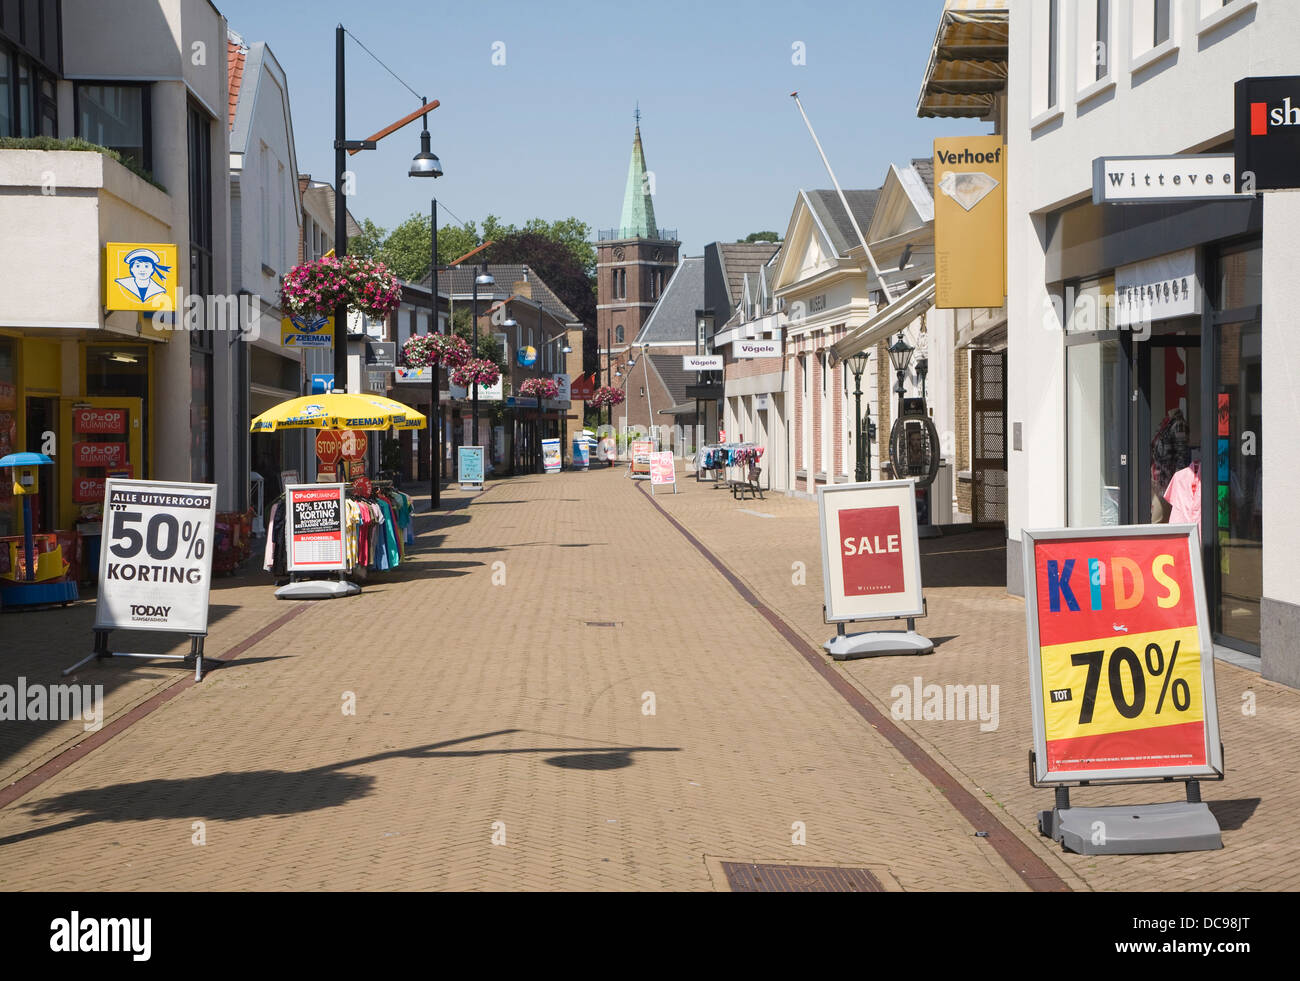 Almost deserted shopping street hot weather Sliedrecht Netherlands Stock Photo